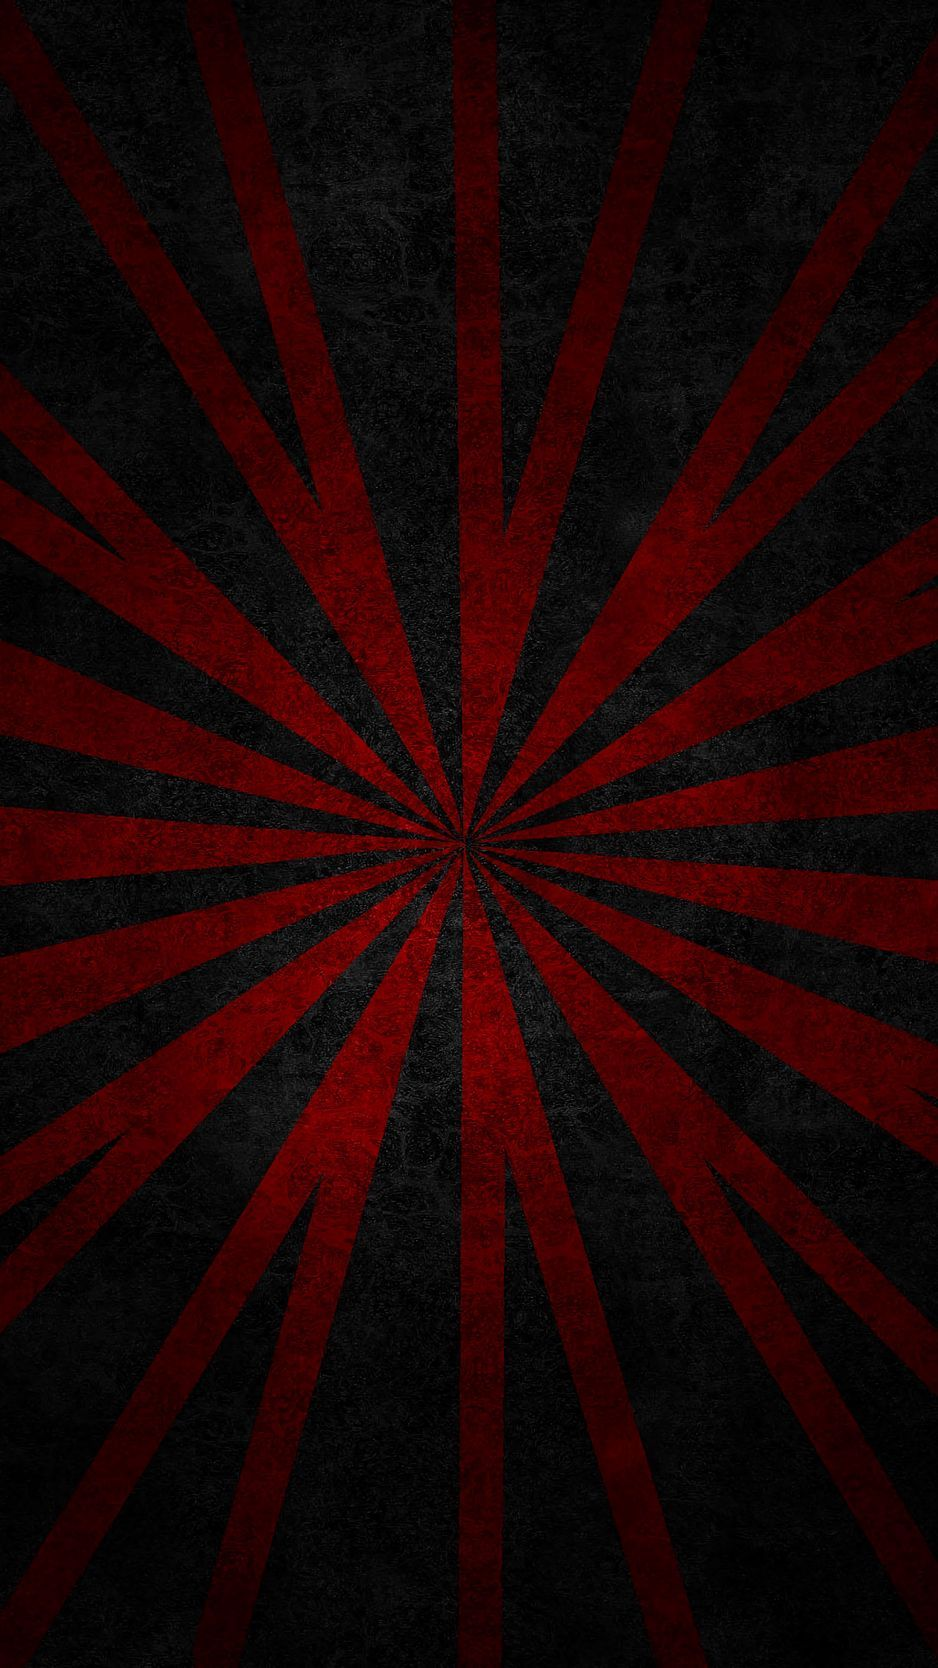 Download wallpaper 938x1668 lines, rotation, red, black